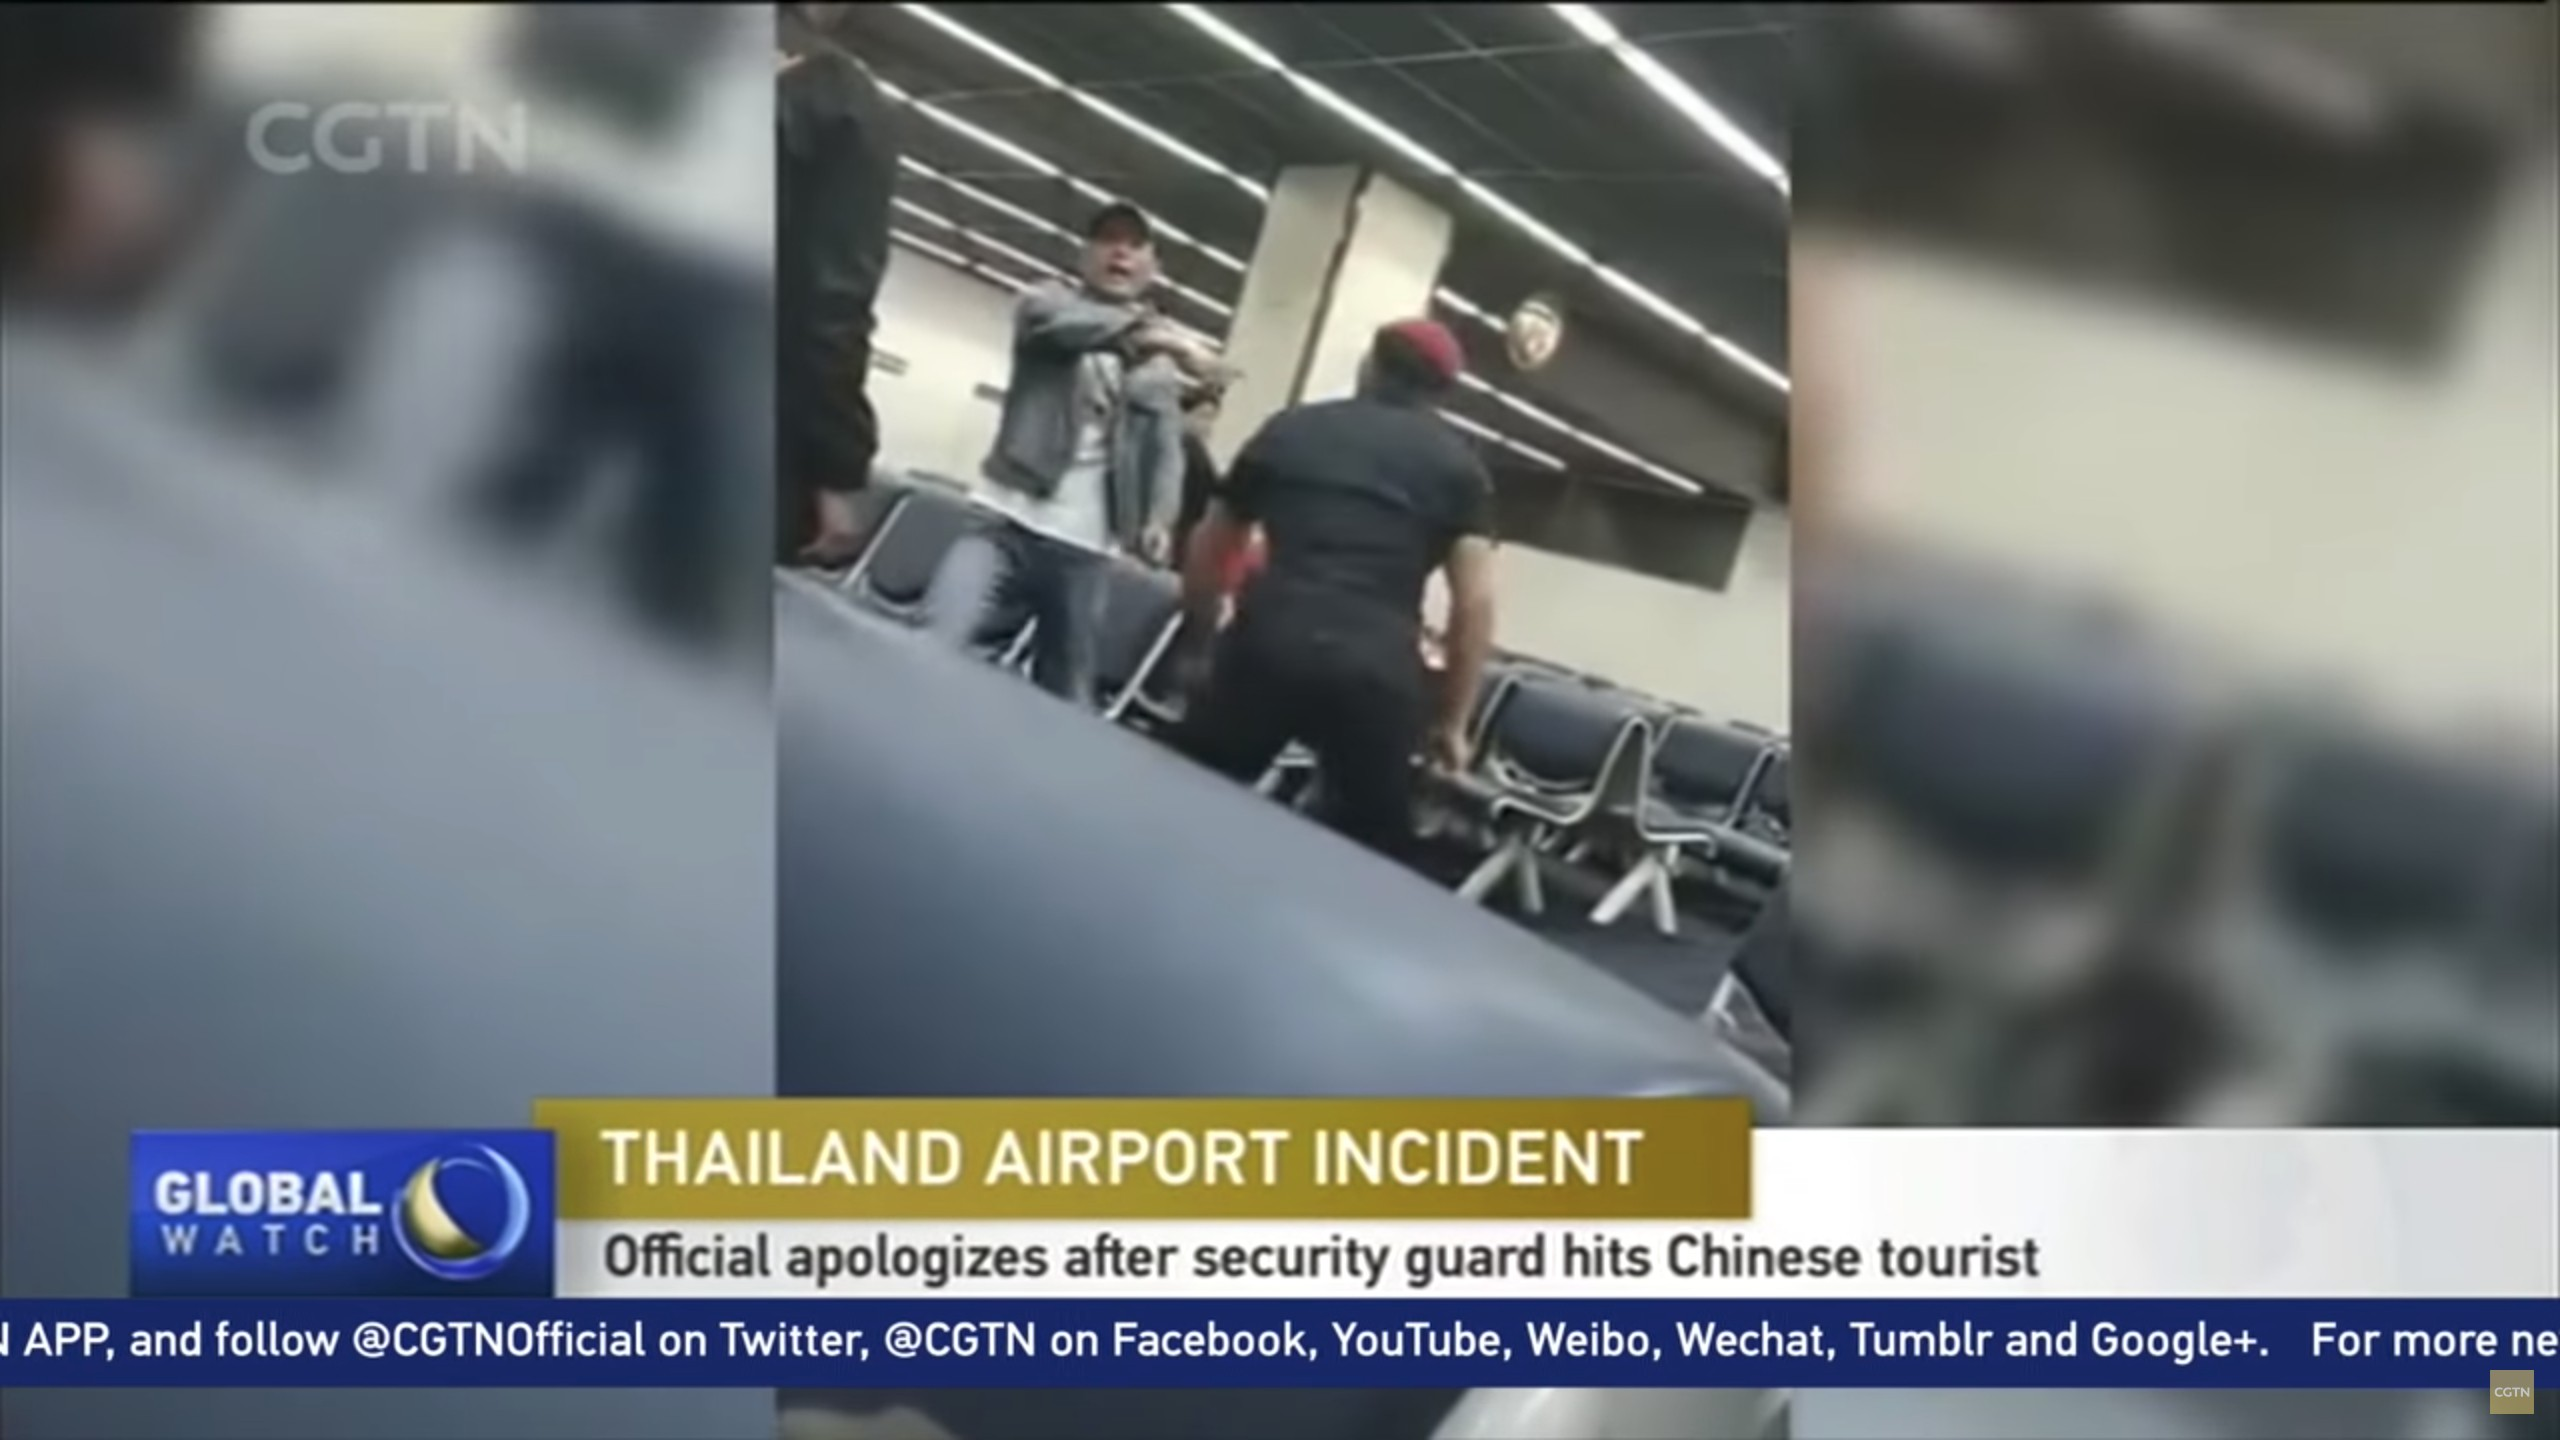 Video captures Thai airport security guard hitting Chinese